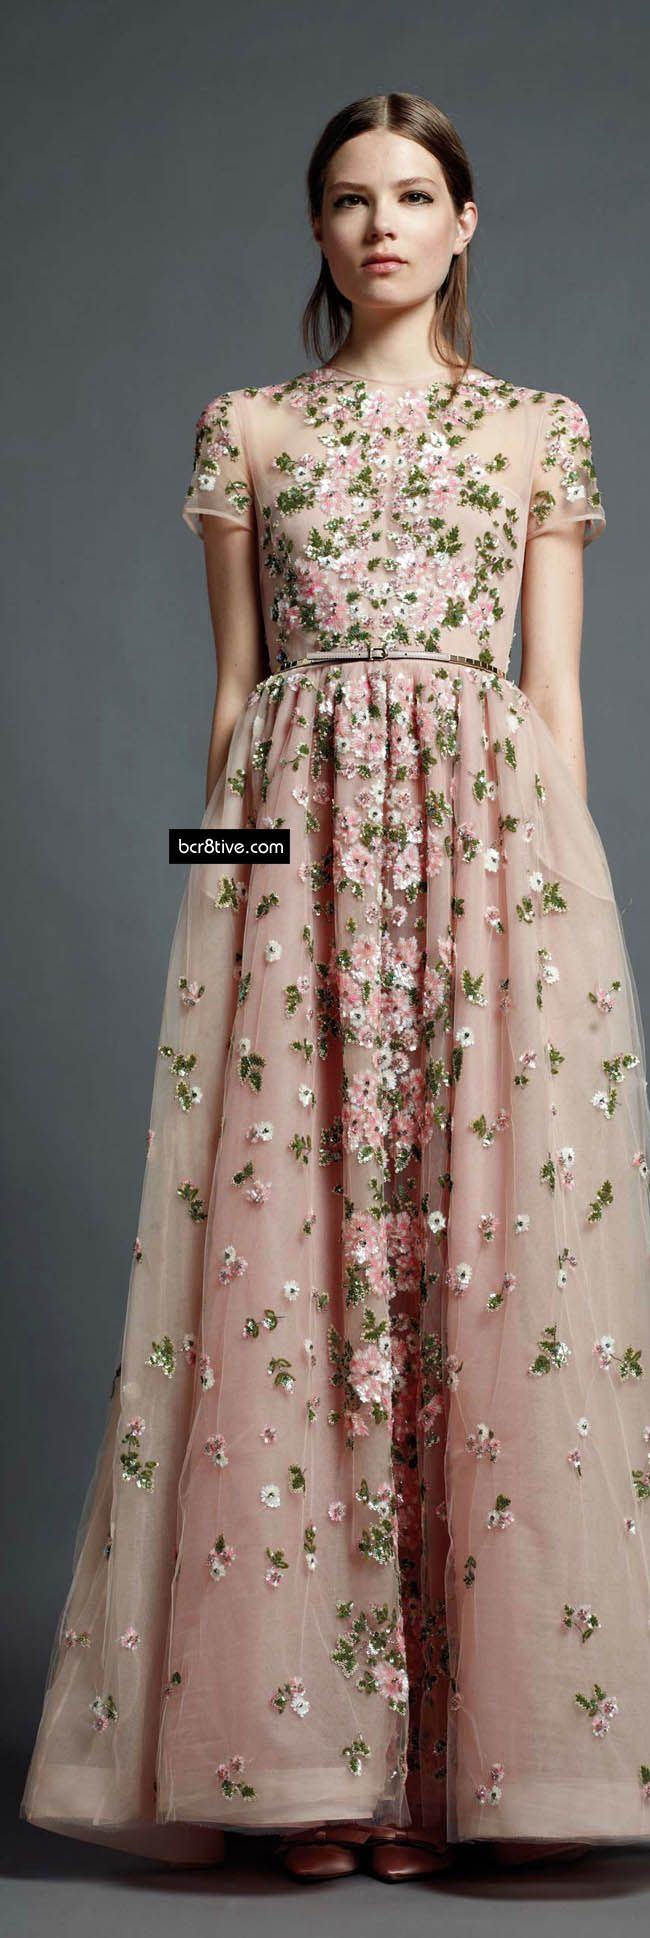 I typically don't pin clothing but this dress is GORGEOUS! Not that I'd have an occasion to wear it! haha